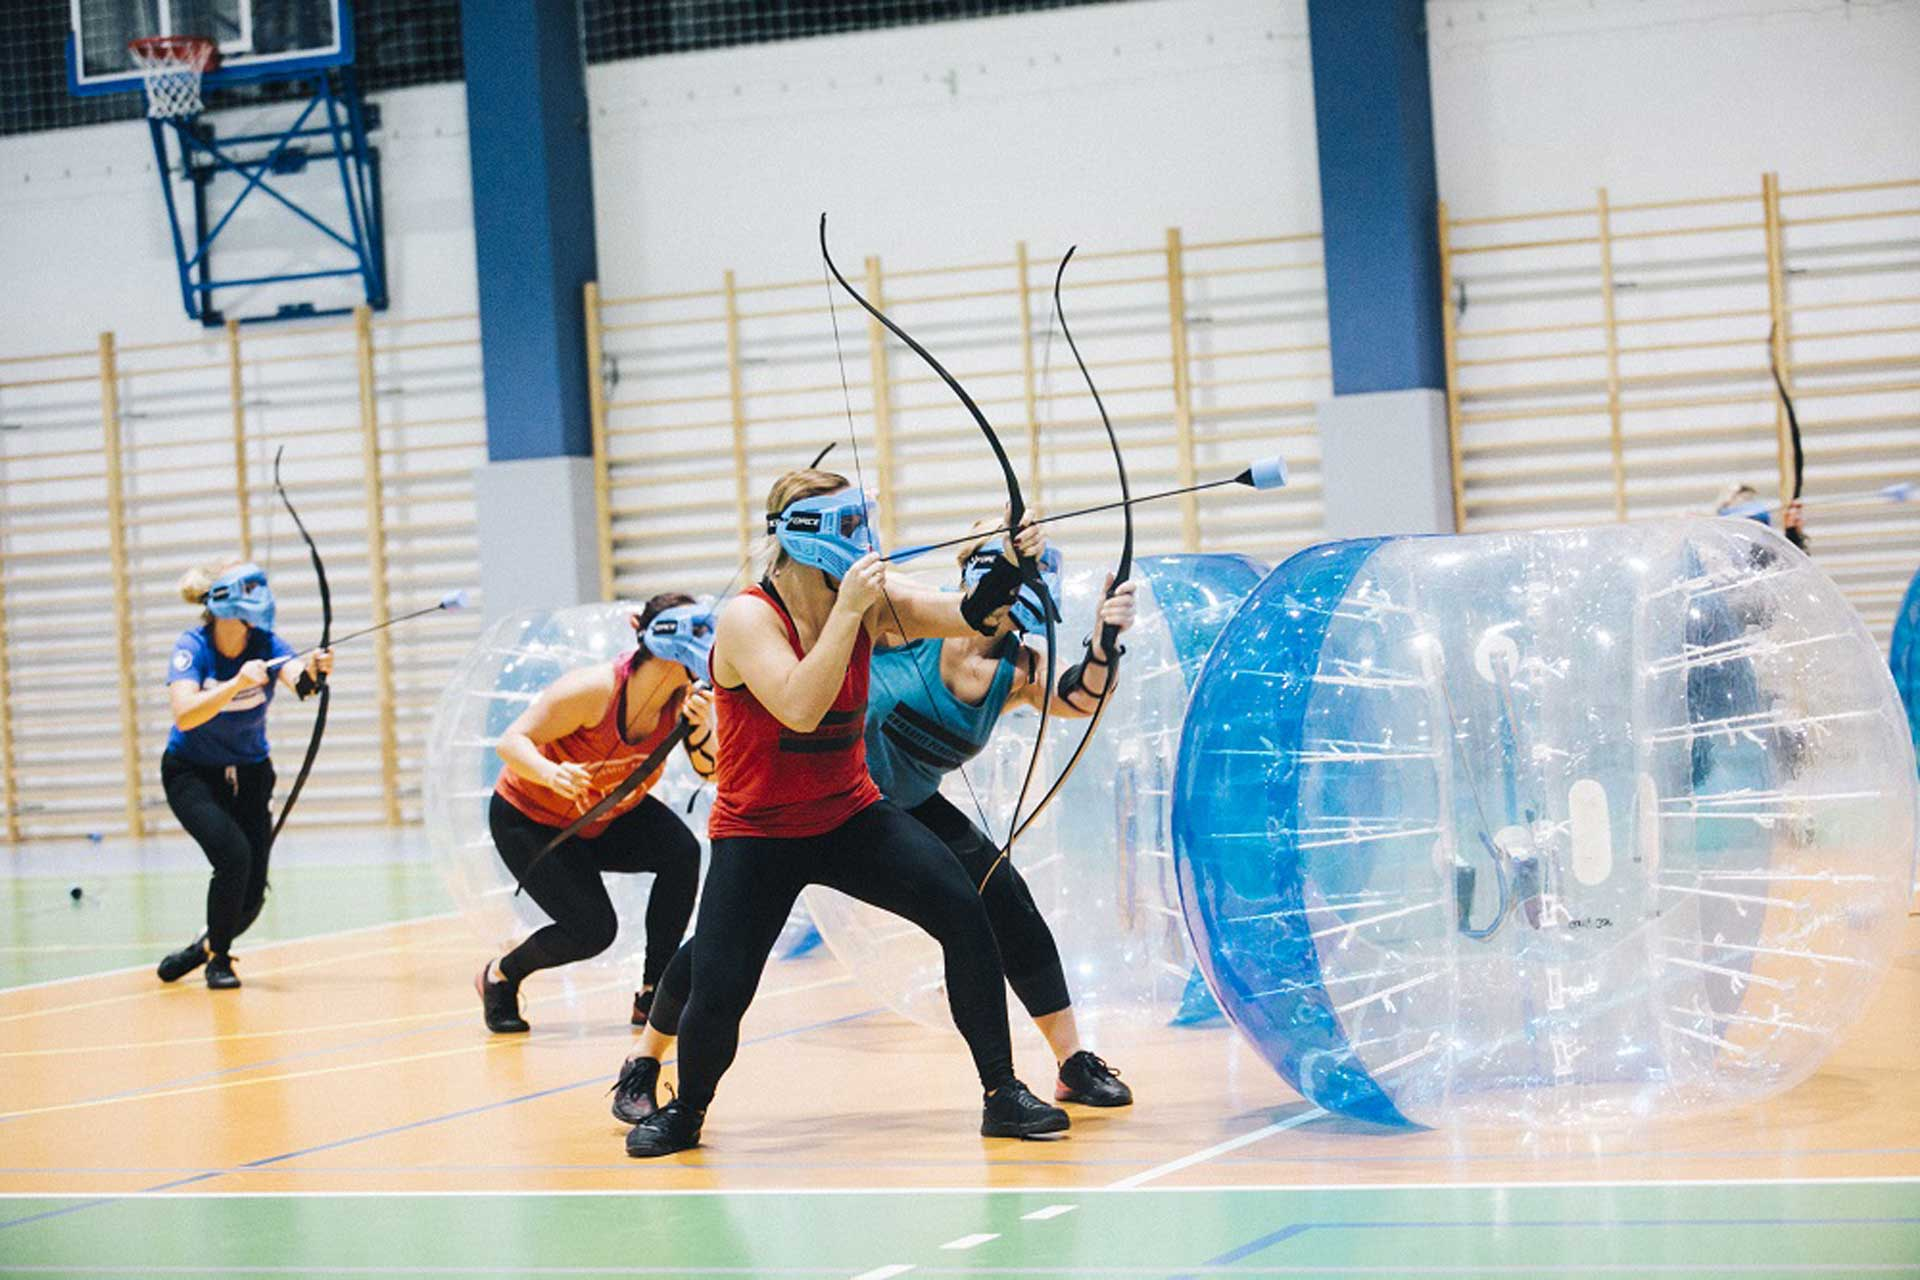 Archery Games + Bubble Football